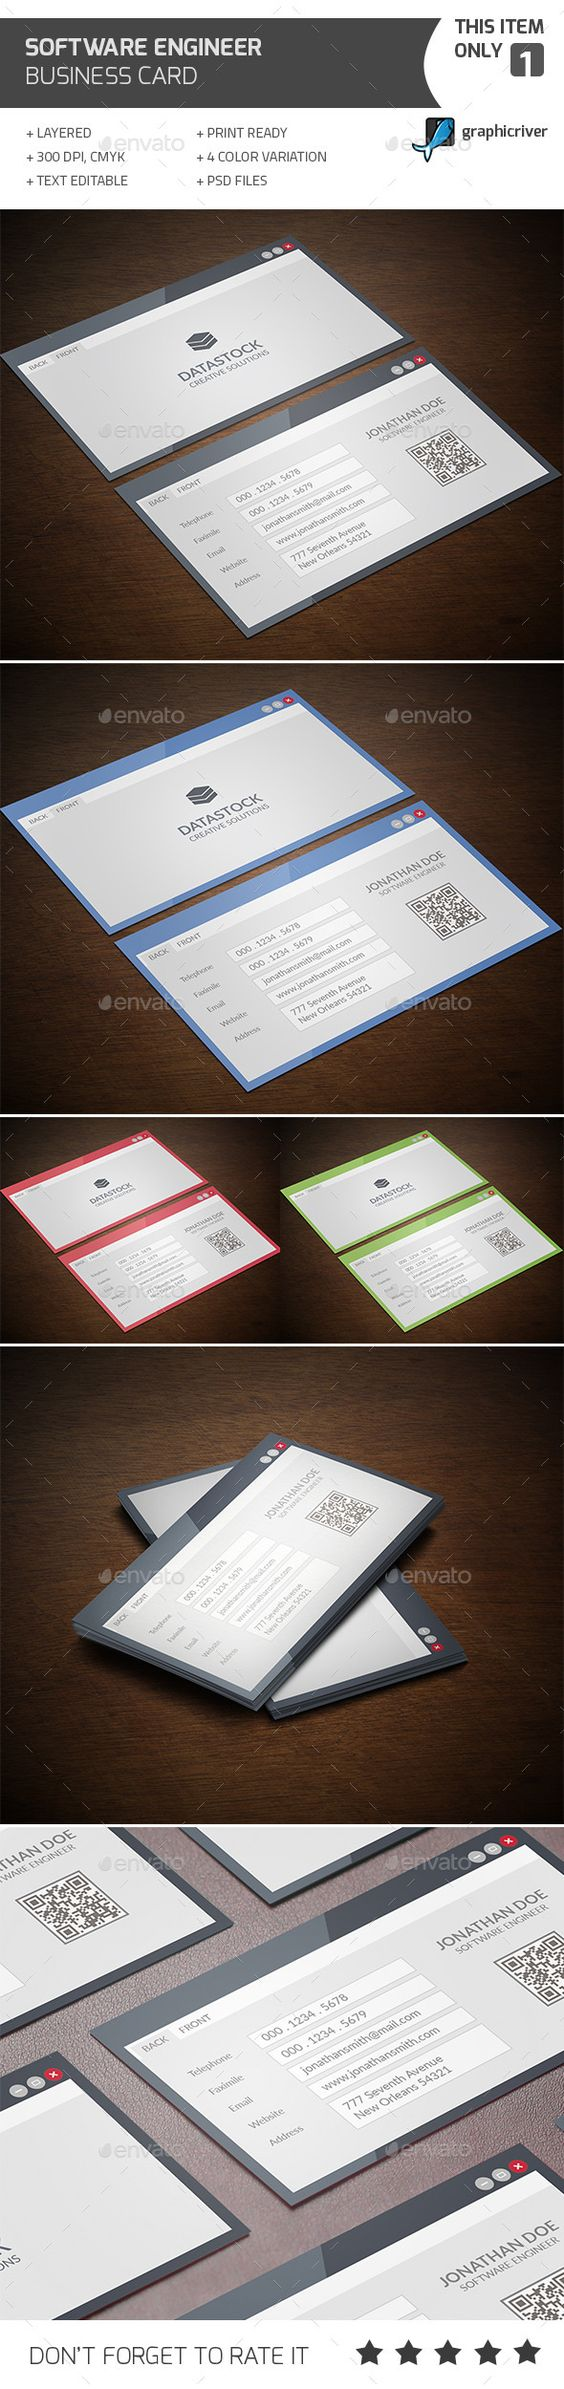 The 25 best business card software ideas on pinterest business the 25 best business card software ideas on pinterest business card design software creative business cards and creative business card designs reheart Gallery